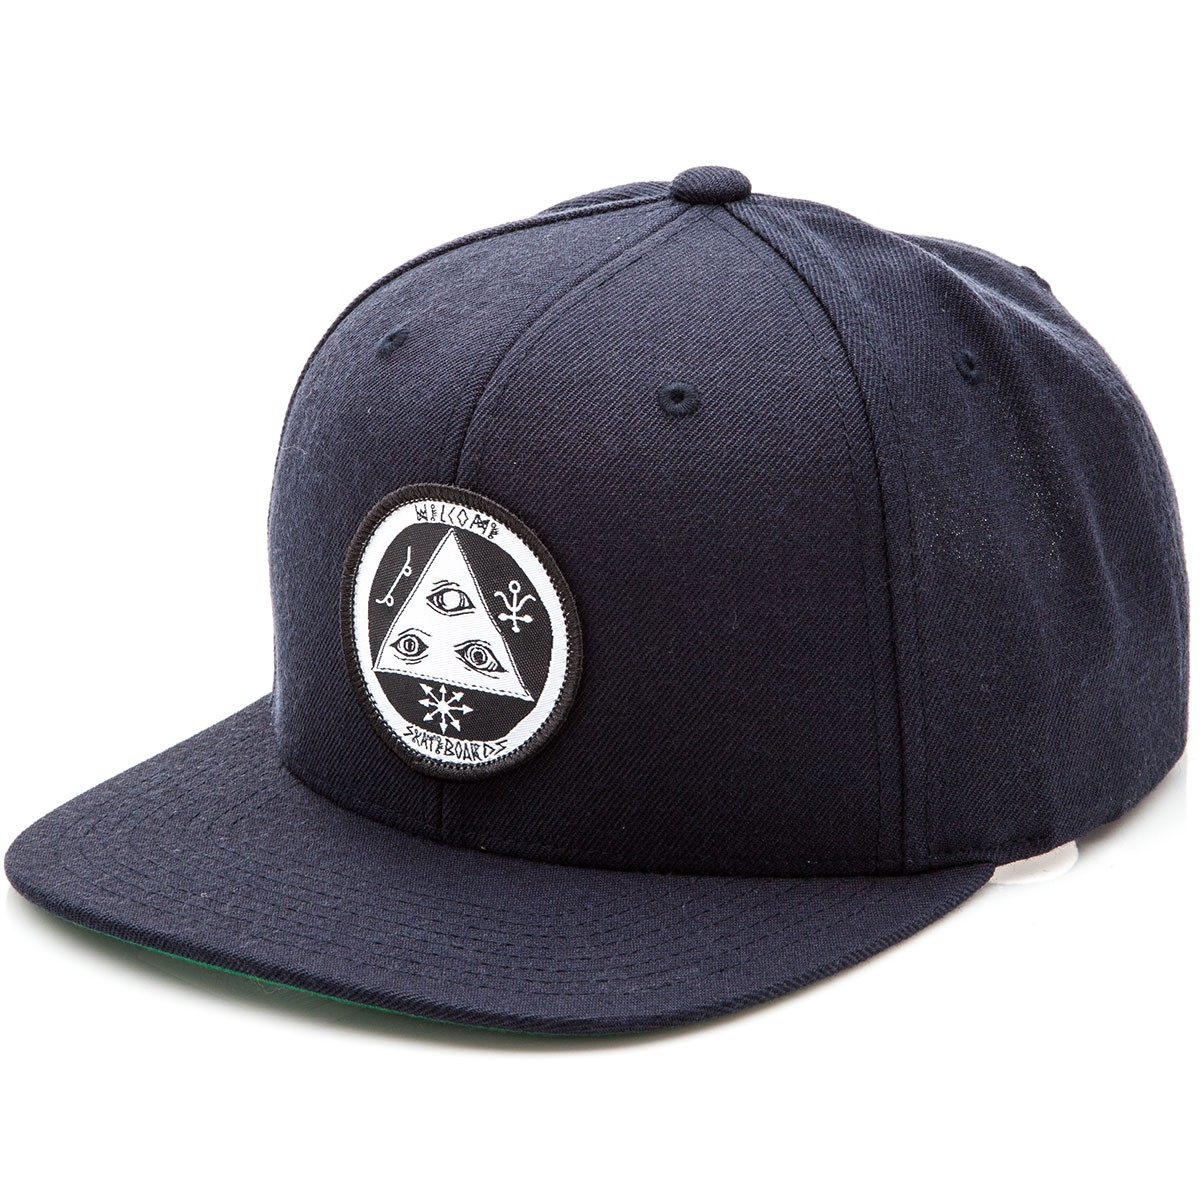 Welcome Talisman Snapback Hat - Navy/Black